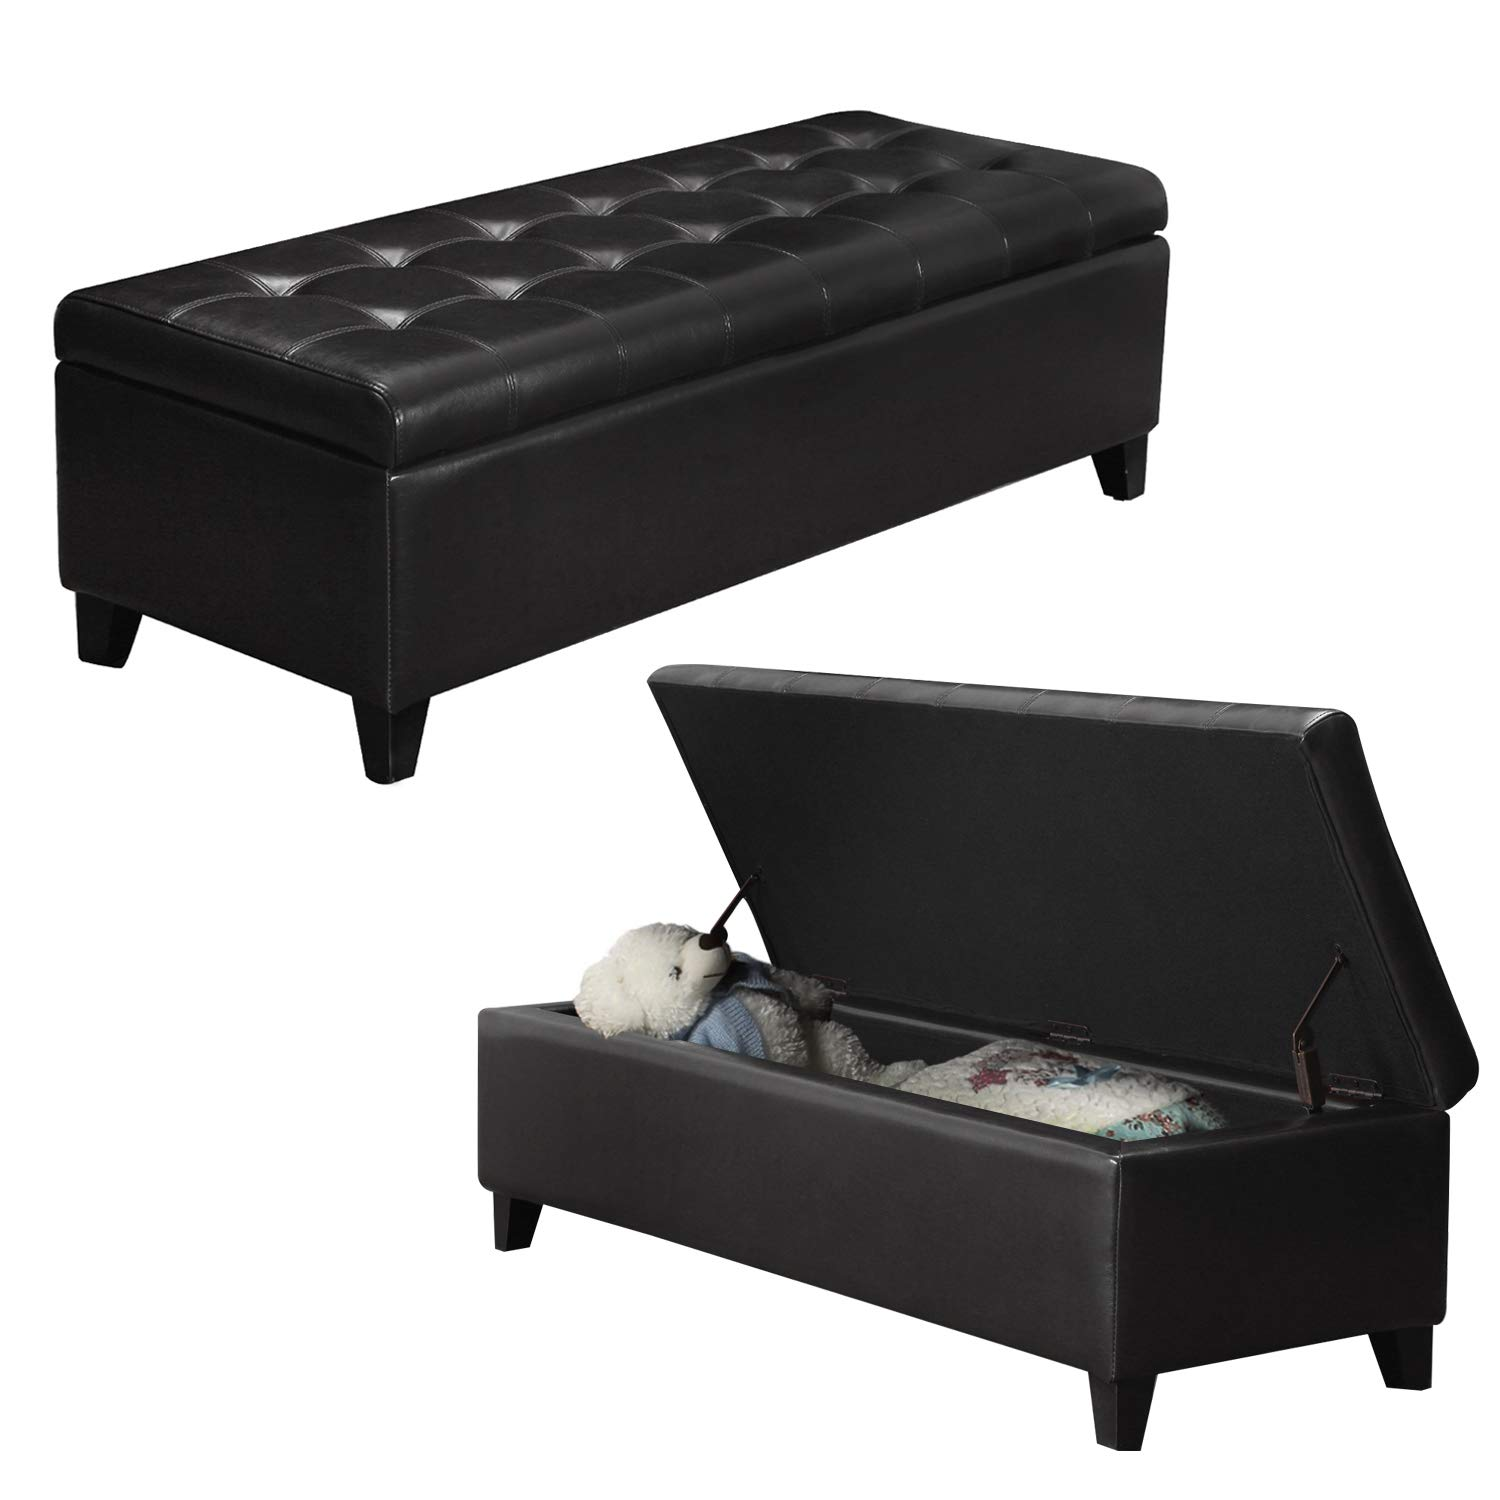 Awe Inspiring Black Faux Leather Tufted Storage Bench Ottoman With Hinged Lid Rectangular Gamerscity Chair Design For Home Gamerscityorg